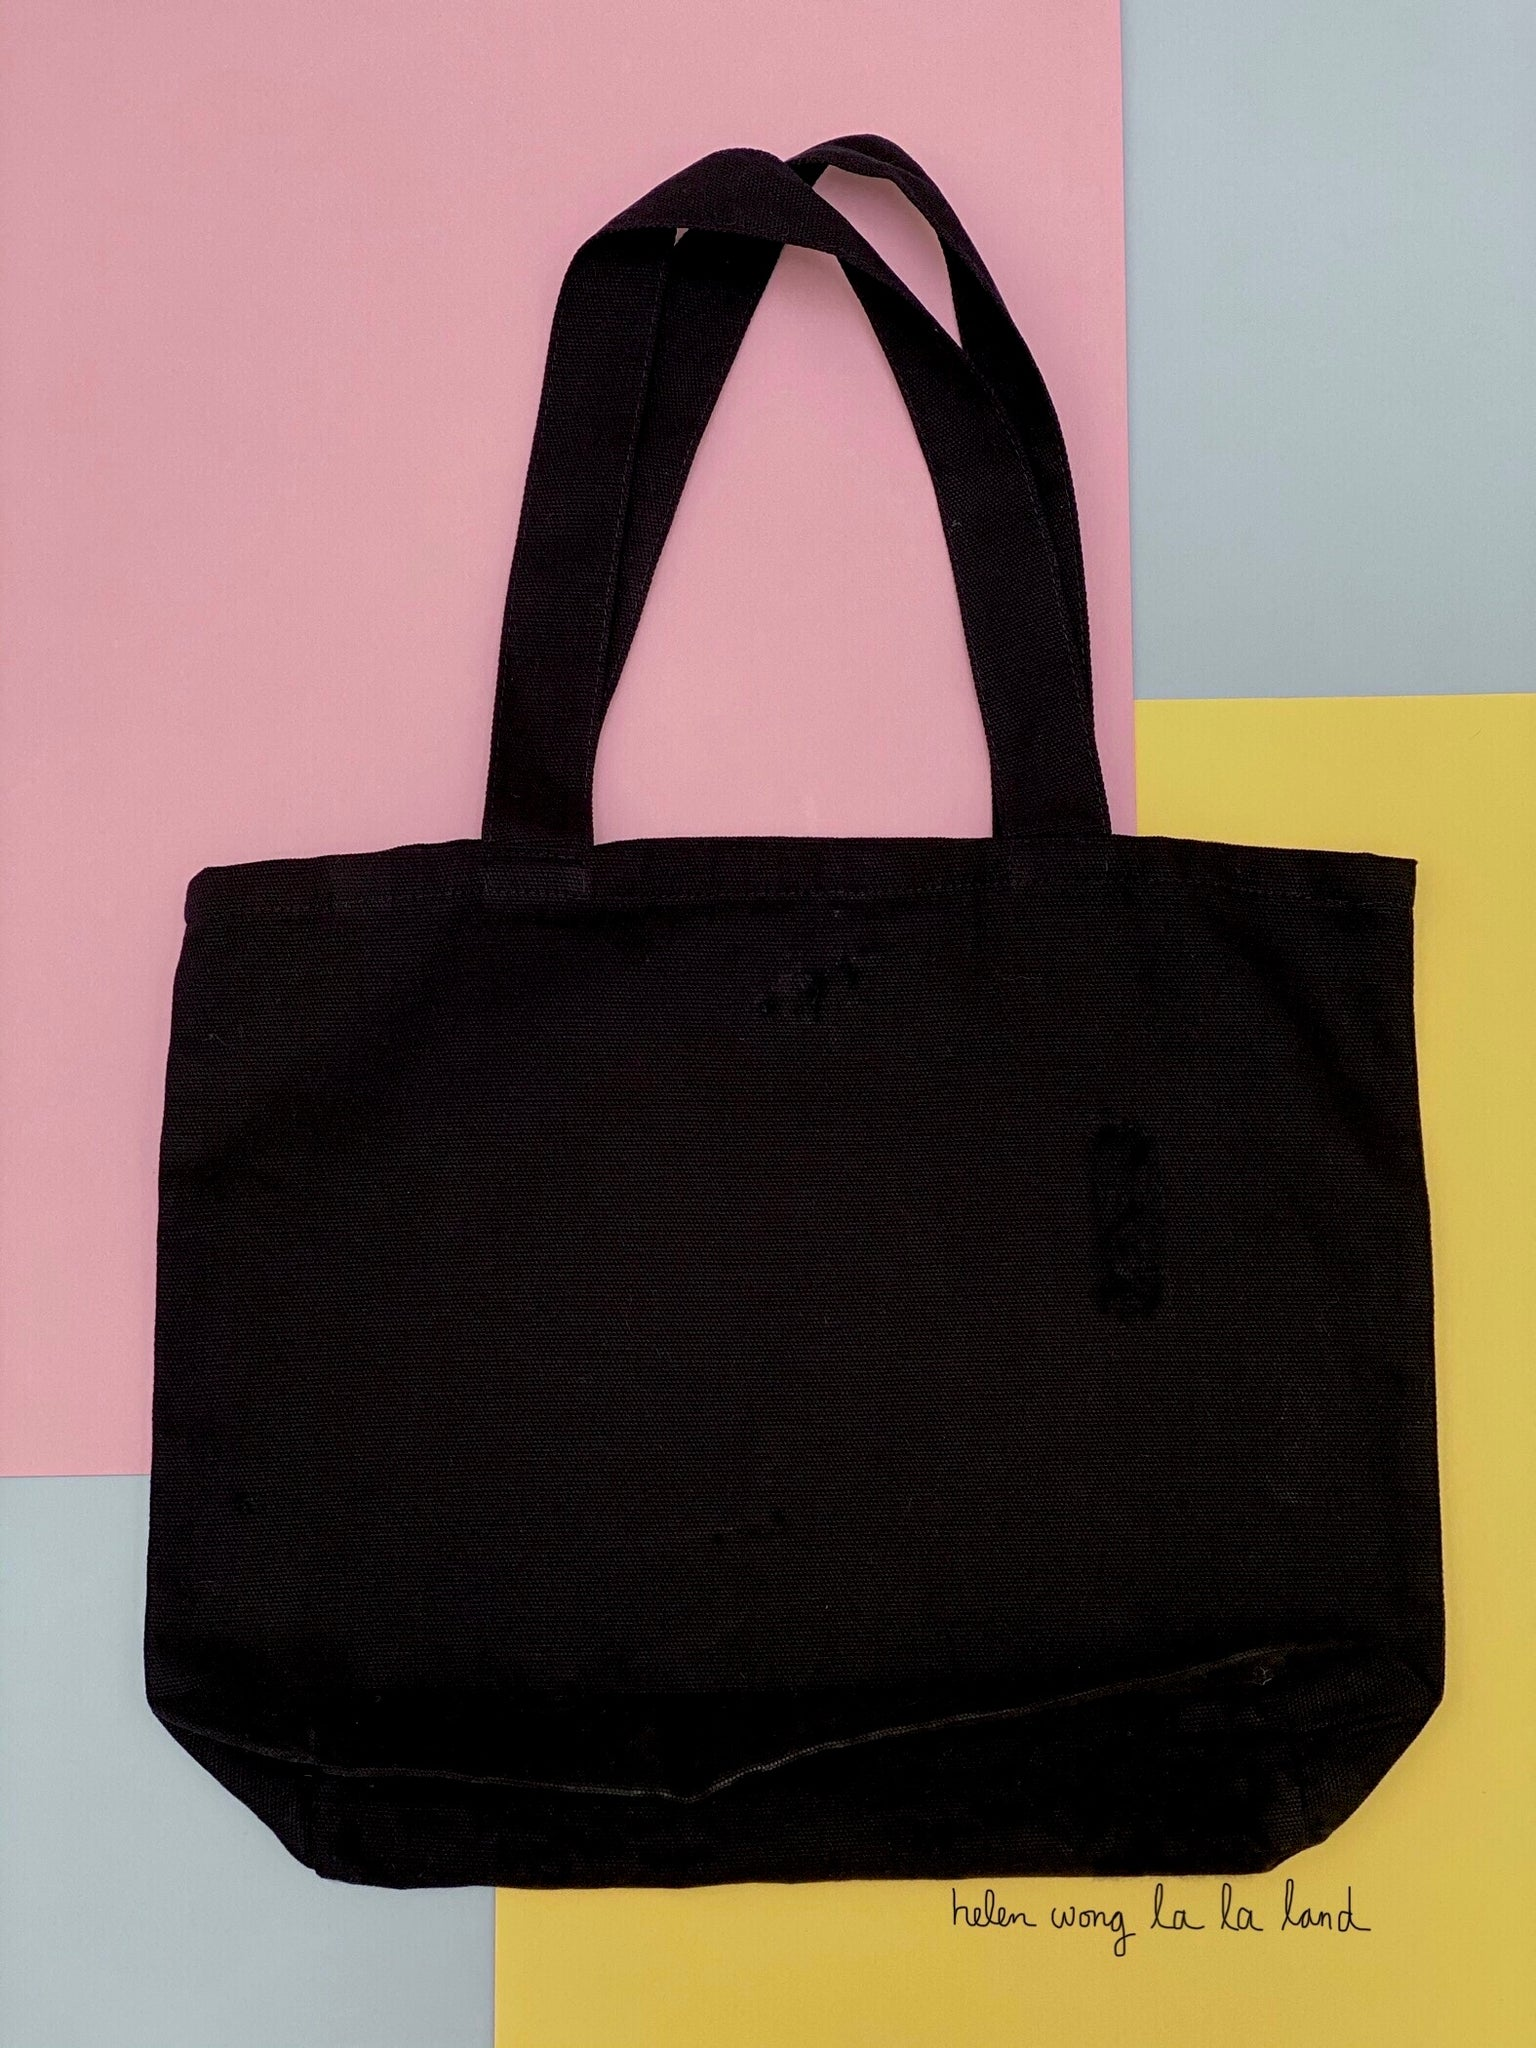 (S/S 2020) Global Resistance shoulder tote in BLACK